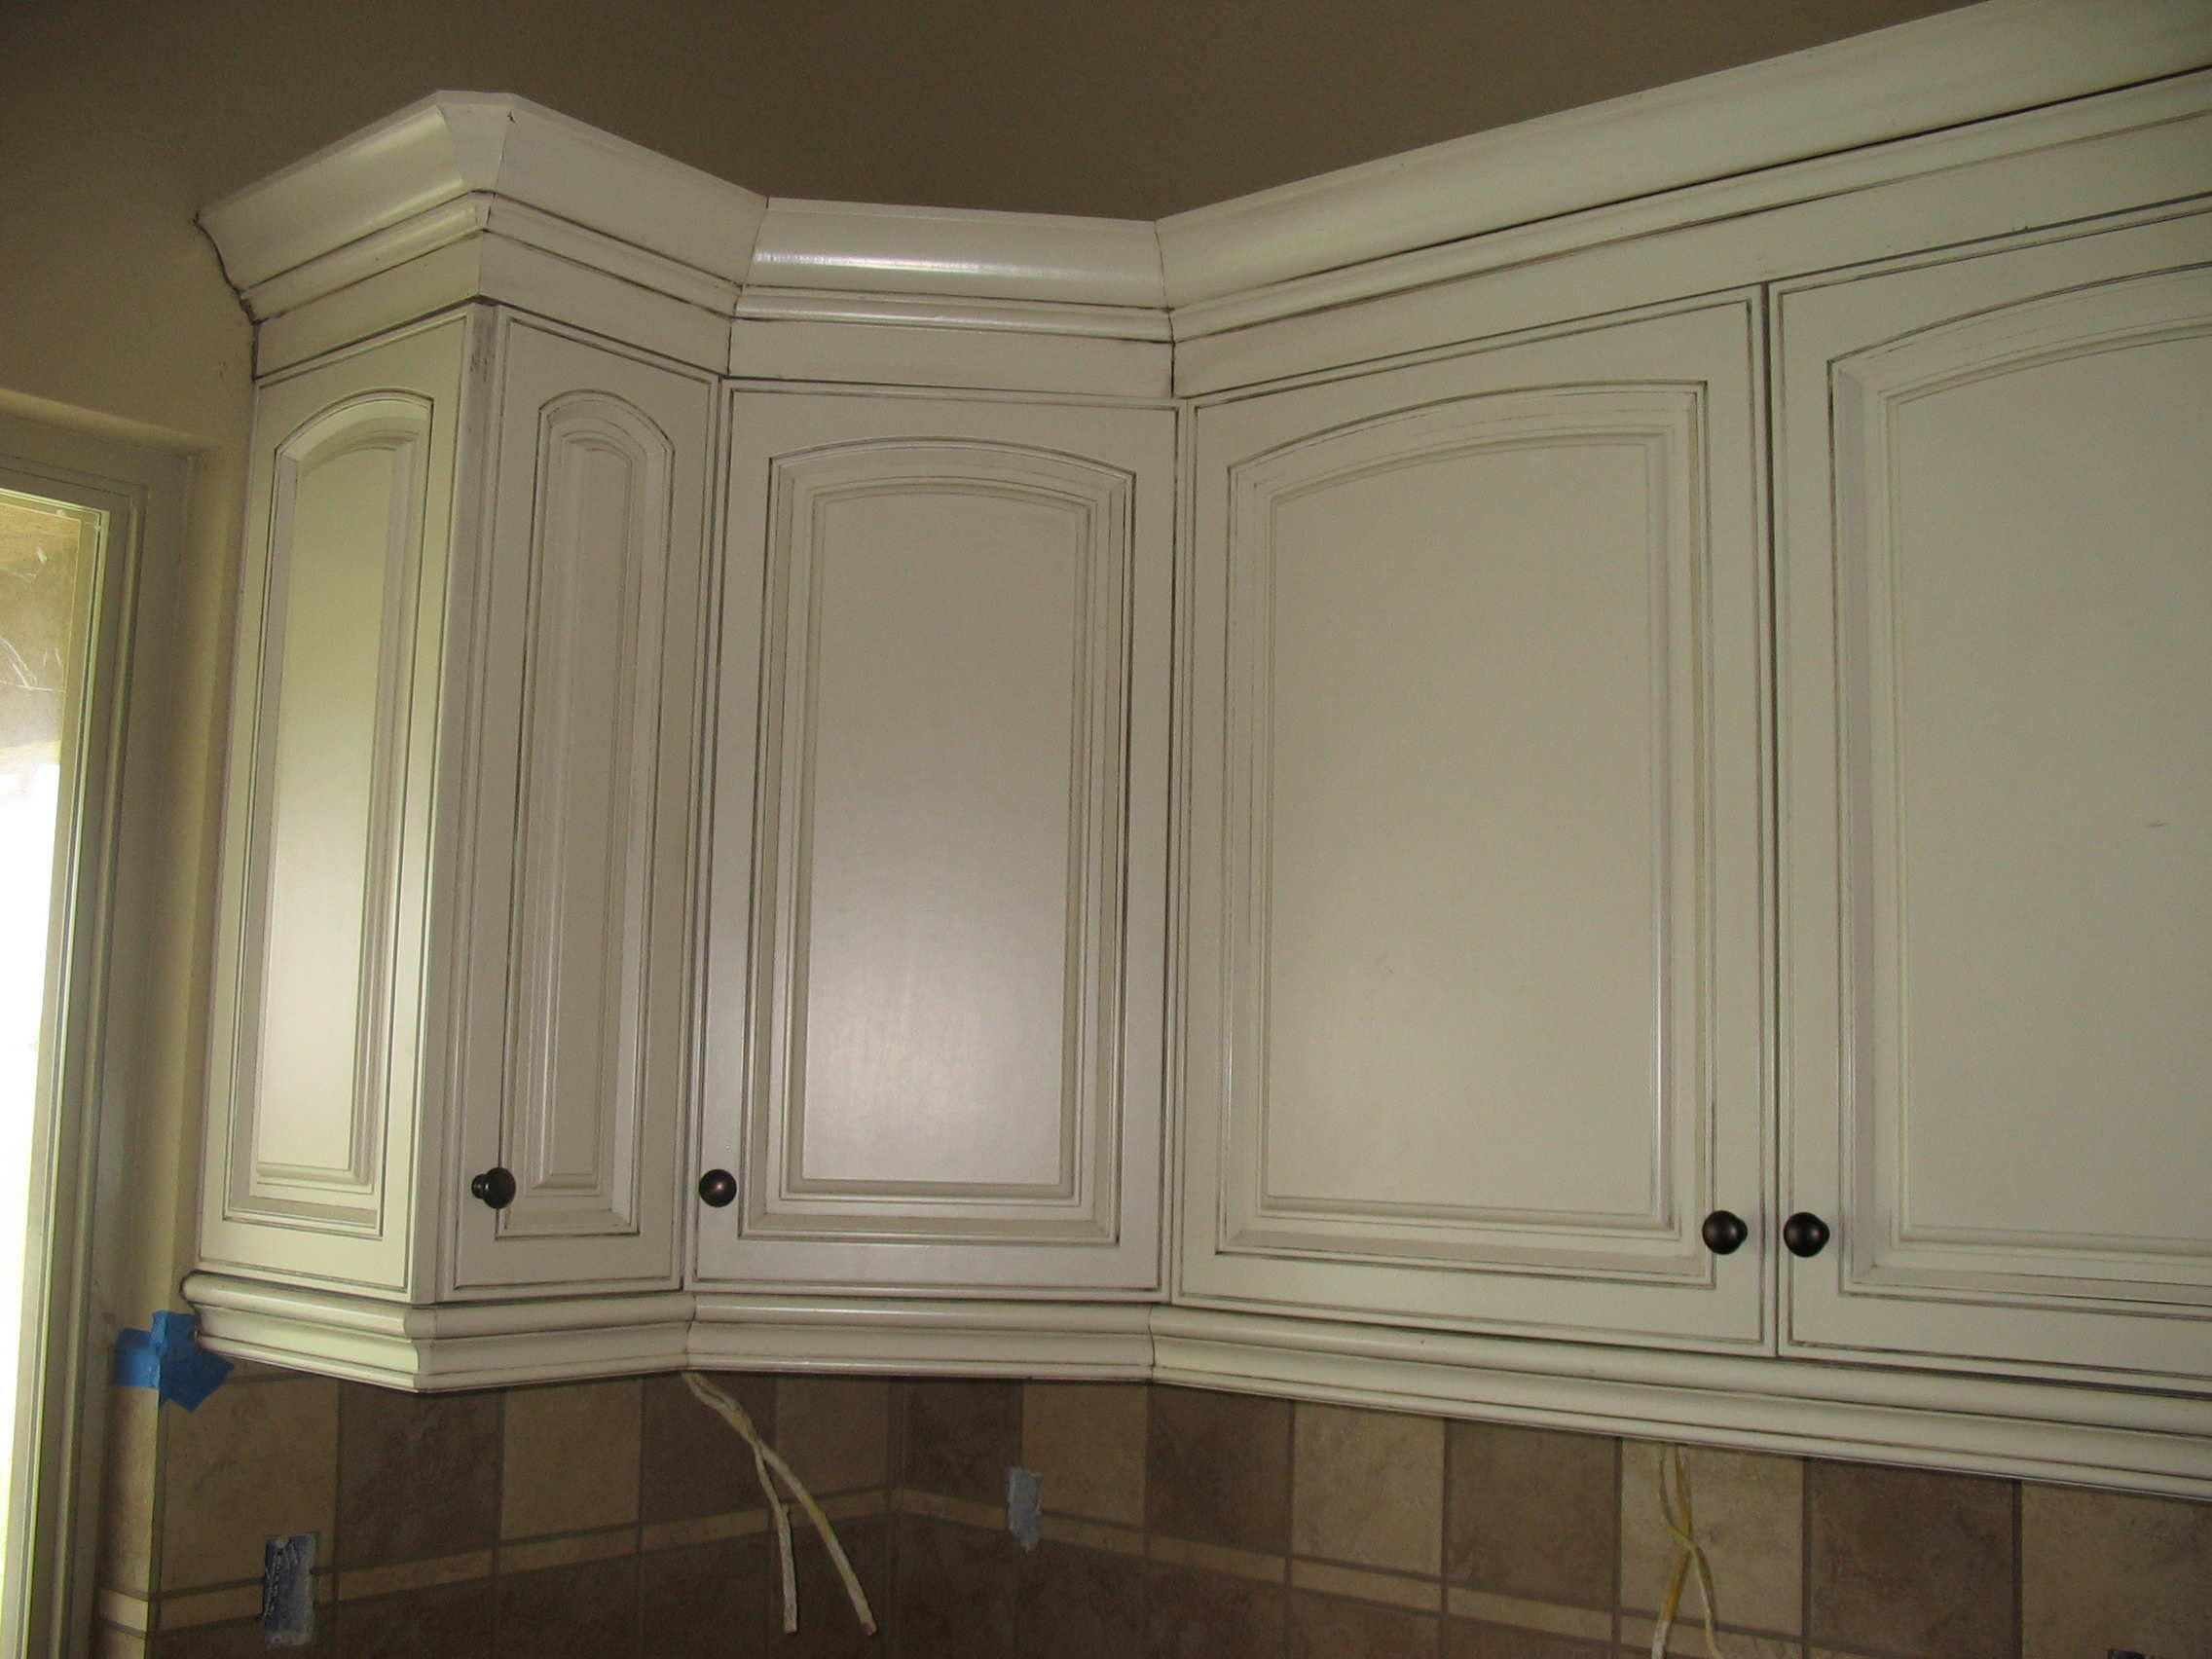 Images of cabinets stained white justdotchristina blog for Staining kitchen cabinets